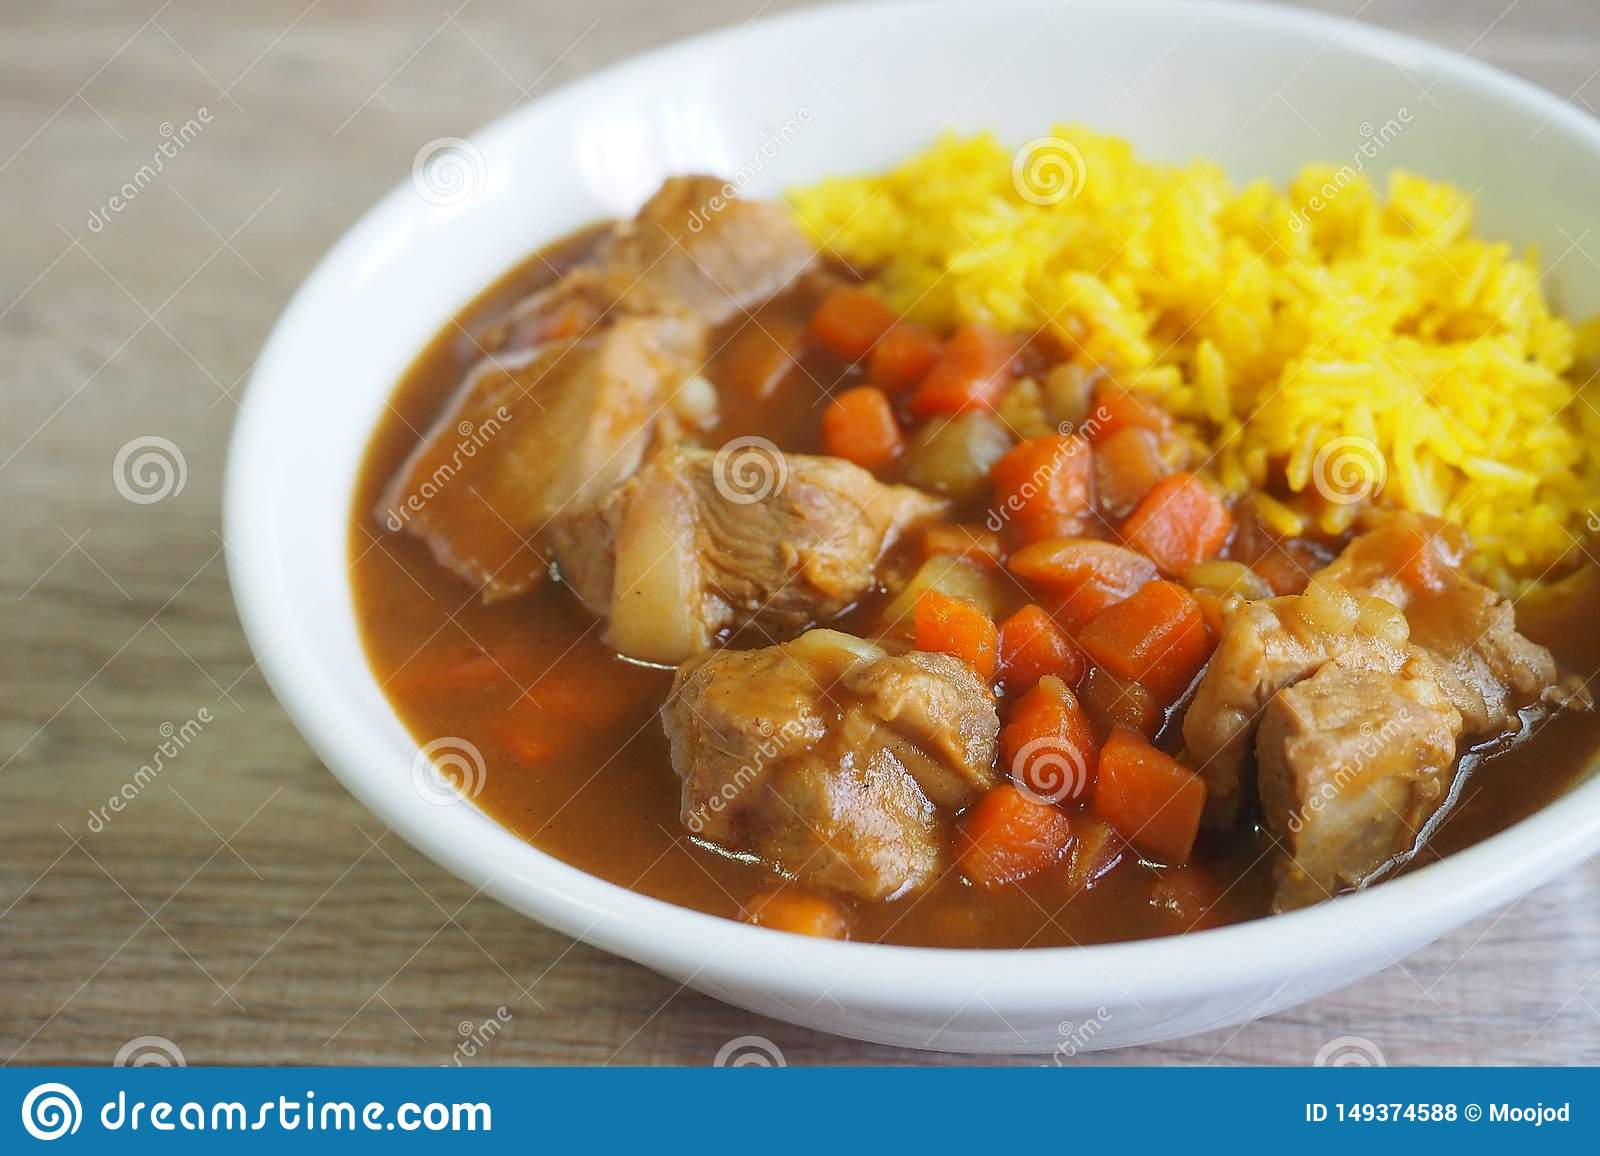 Japanese style pork loin curry with yellow curry rice